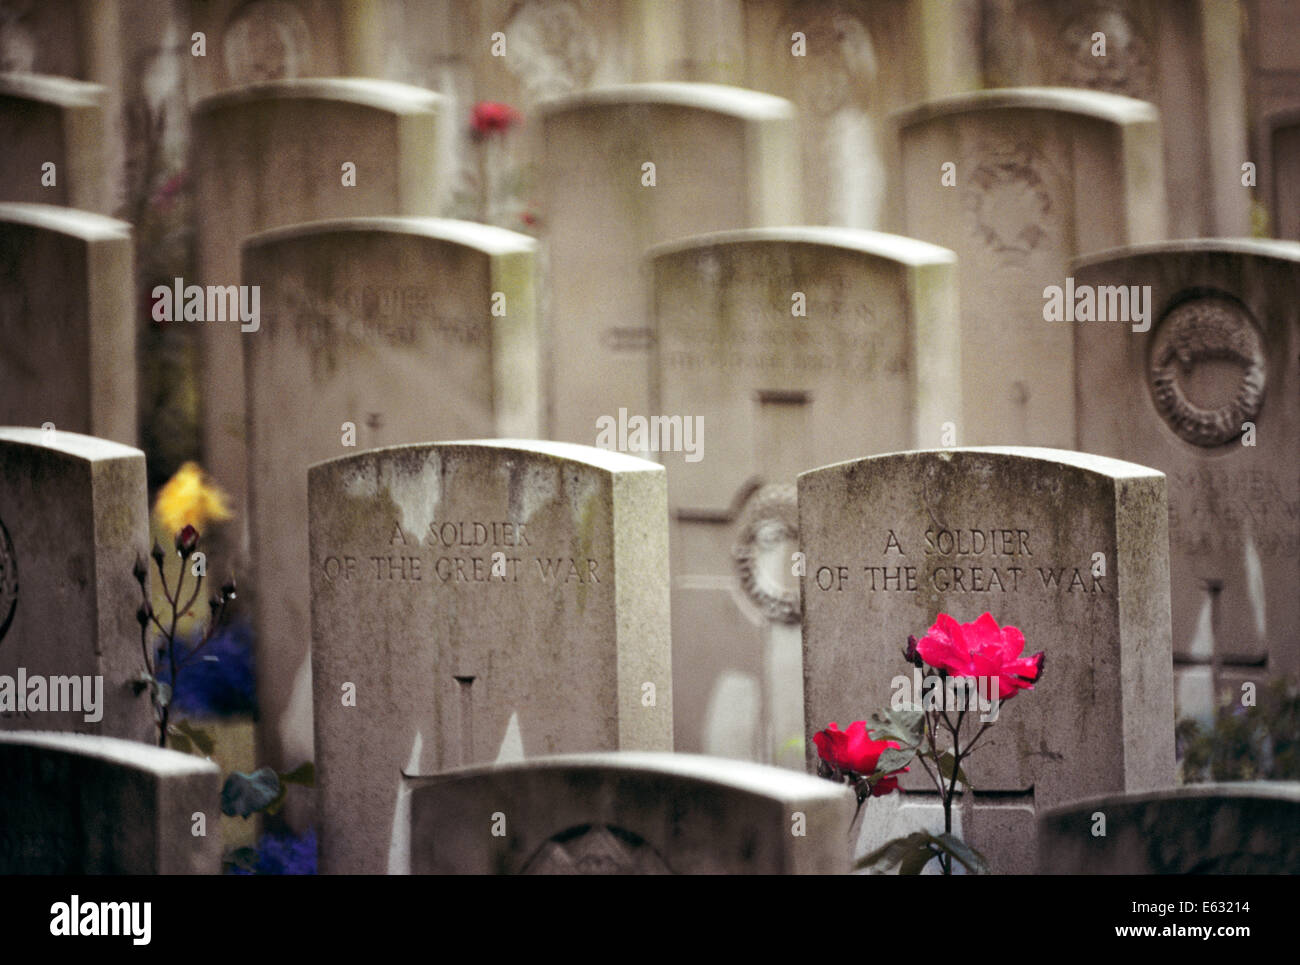 SOLDIERS GRAVES FROM WORLD WAR ONE A FLANDERS FIELD WITH RED ROSE - Stock Image